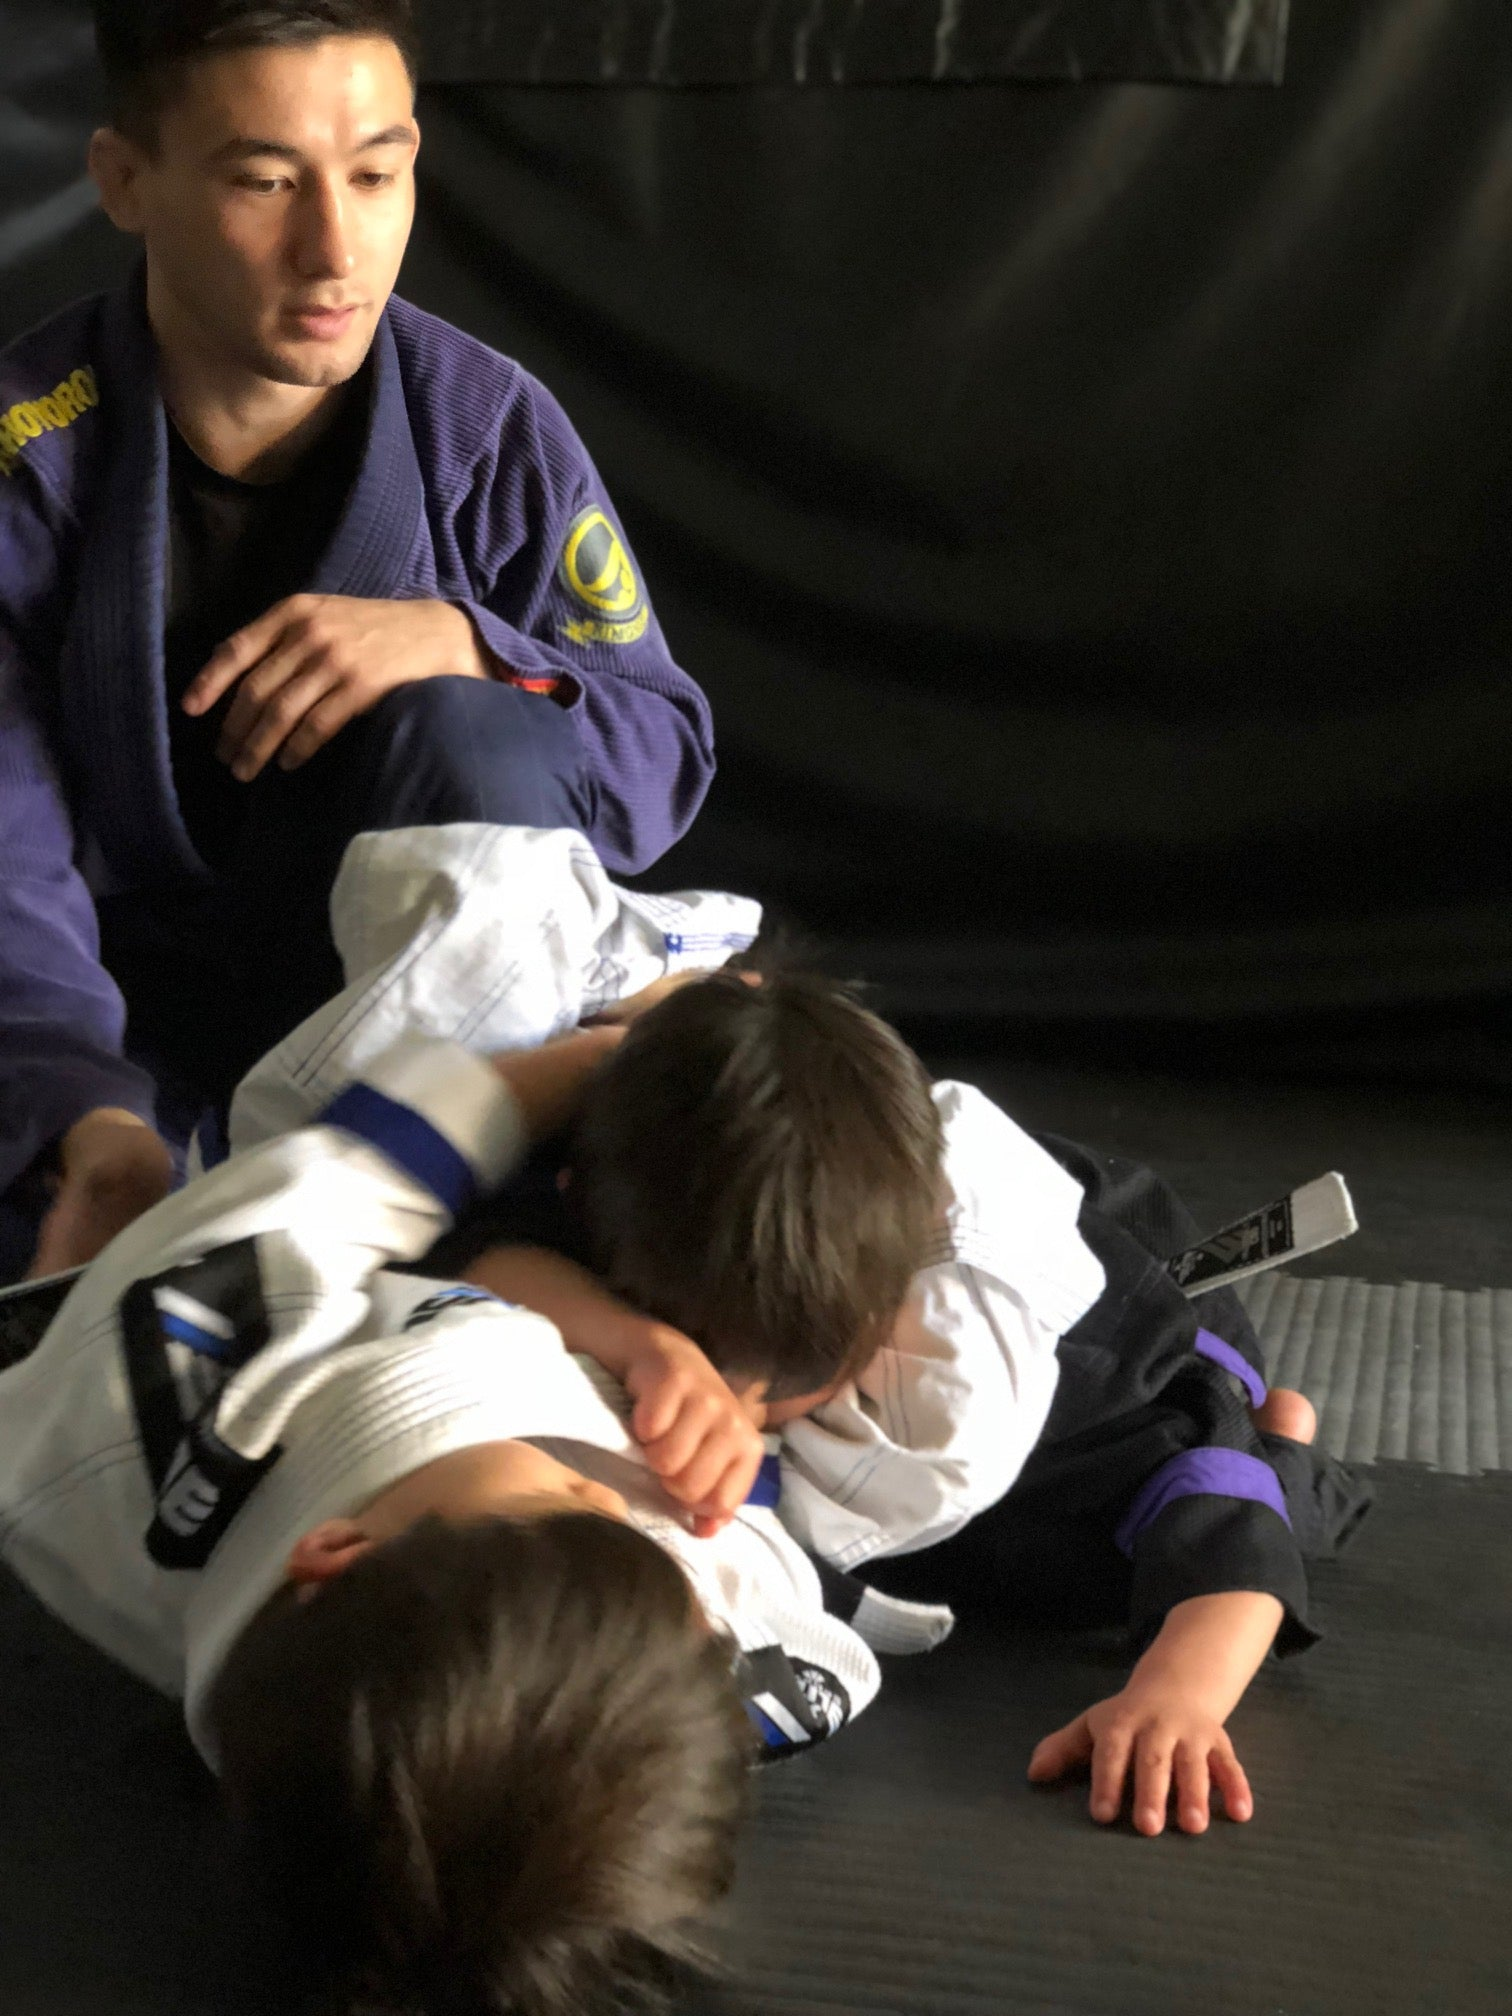 Elite Sports Team Elite Bjj Fighter Oliver Ho & Jonathan Ho Image7